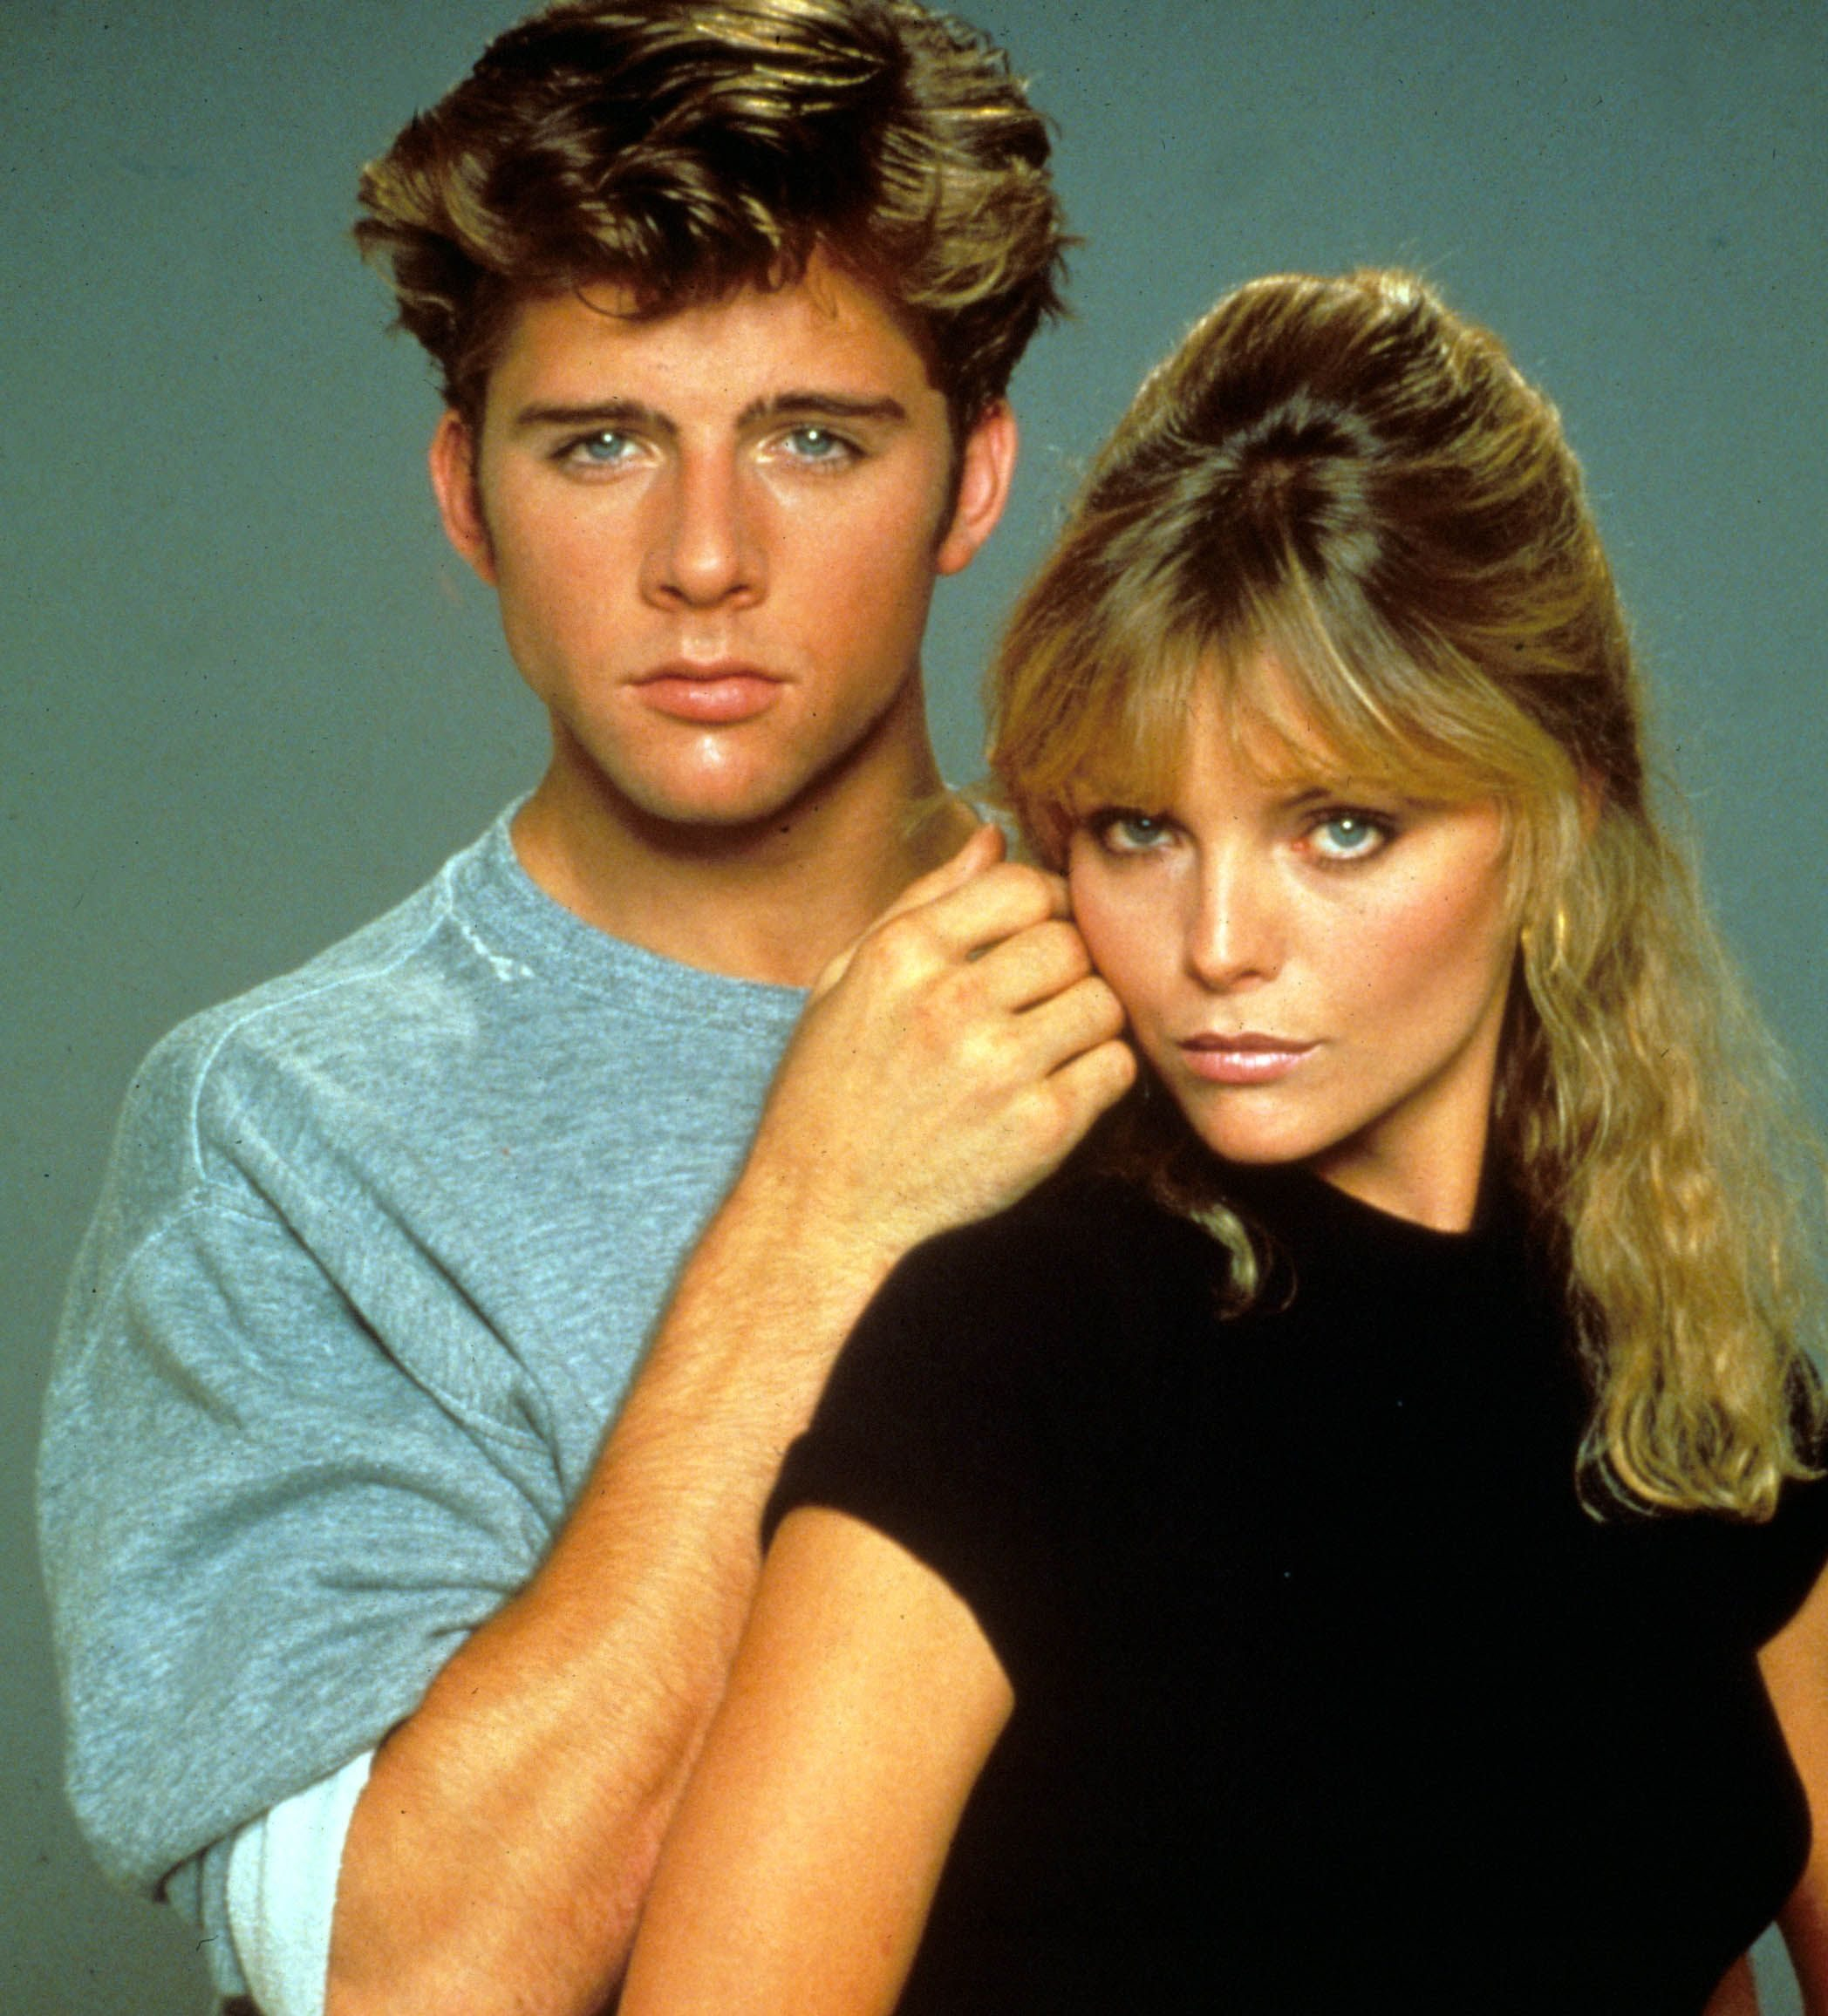 movies grease 2 still 3 e1581517700493 20 Embarrassing Movie Roles Actors Just Can't Escape